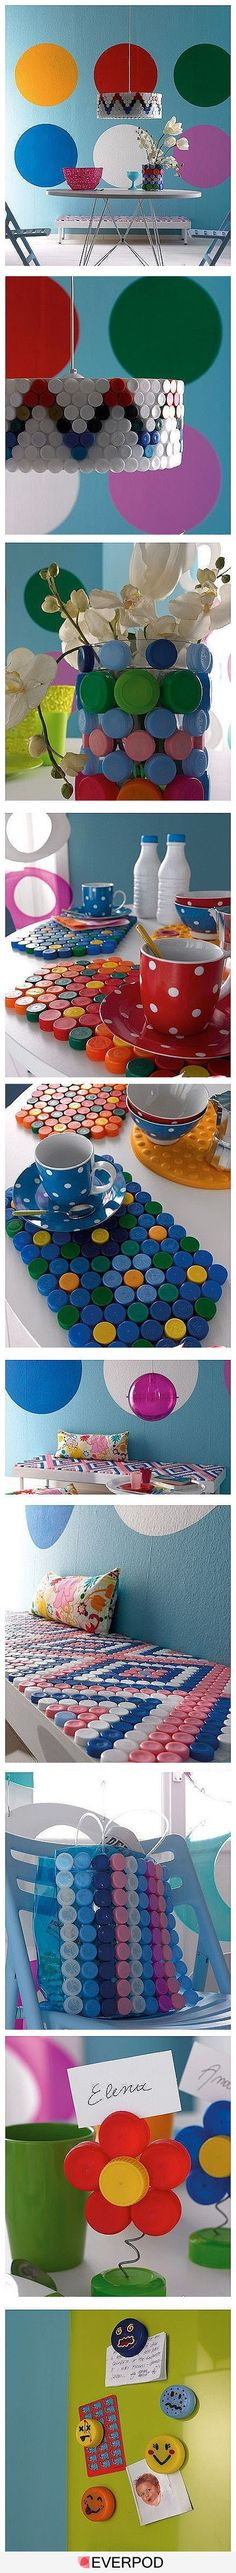 Bottle Caps    (pix only)    http://96195.com/pic-616.html